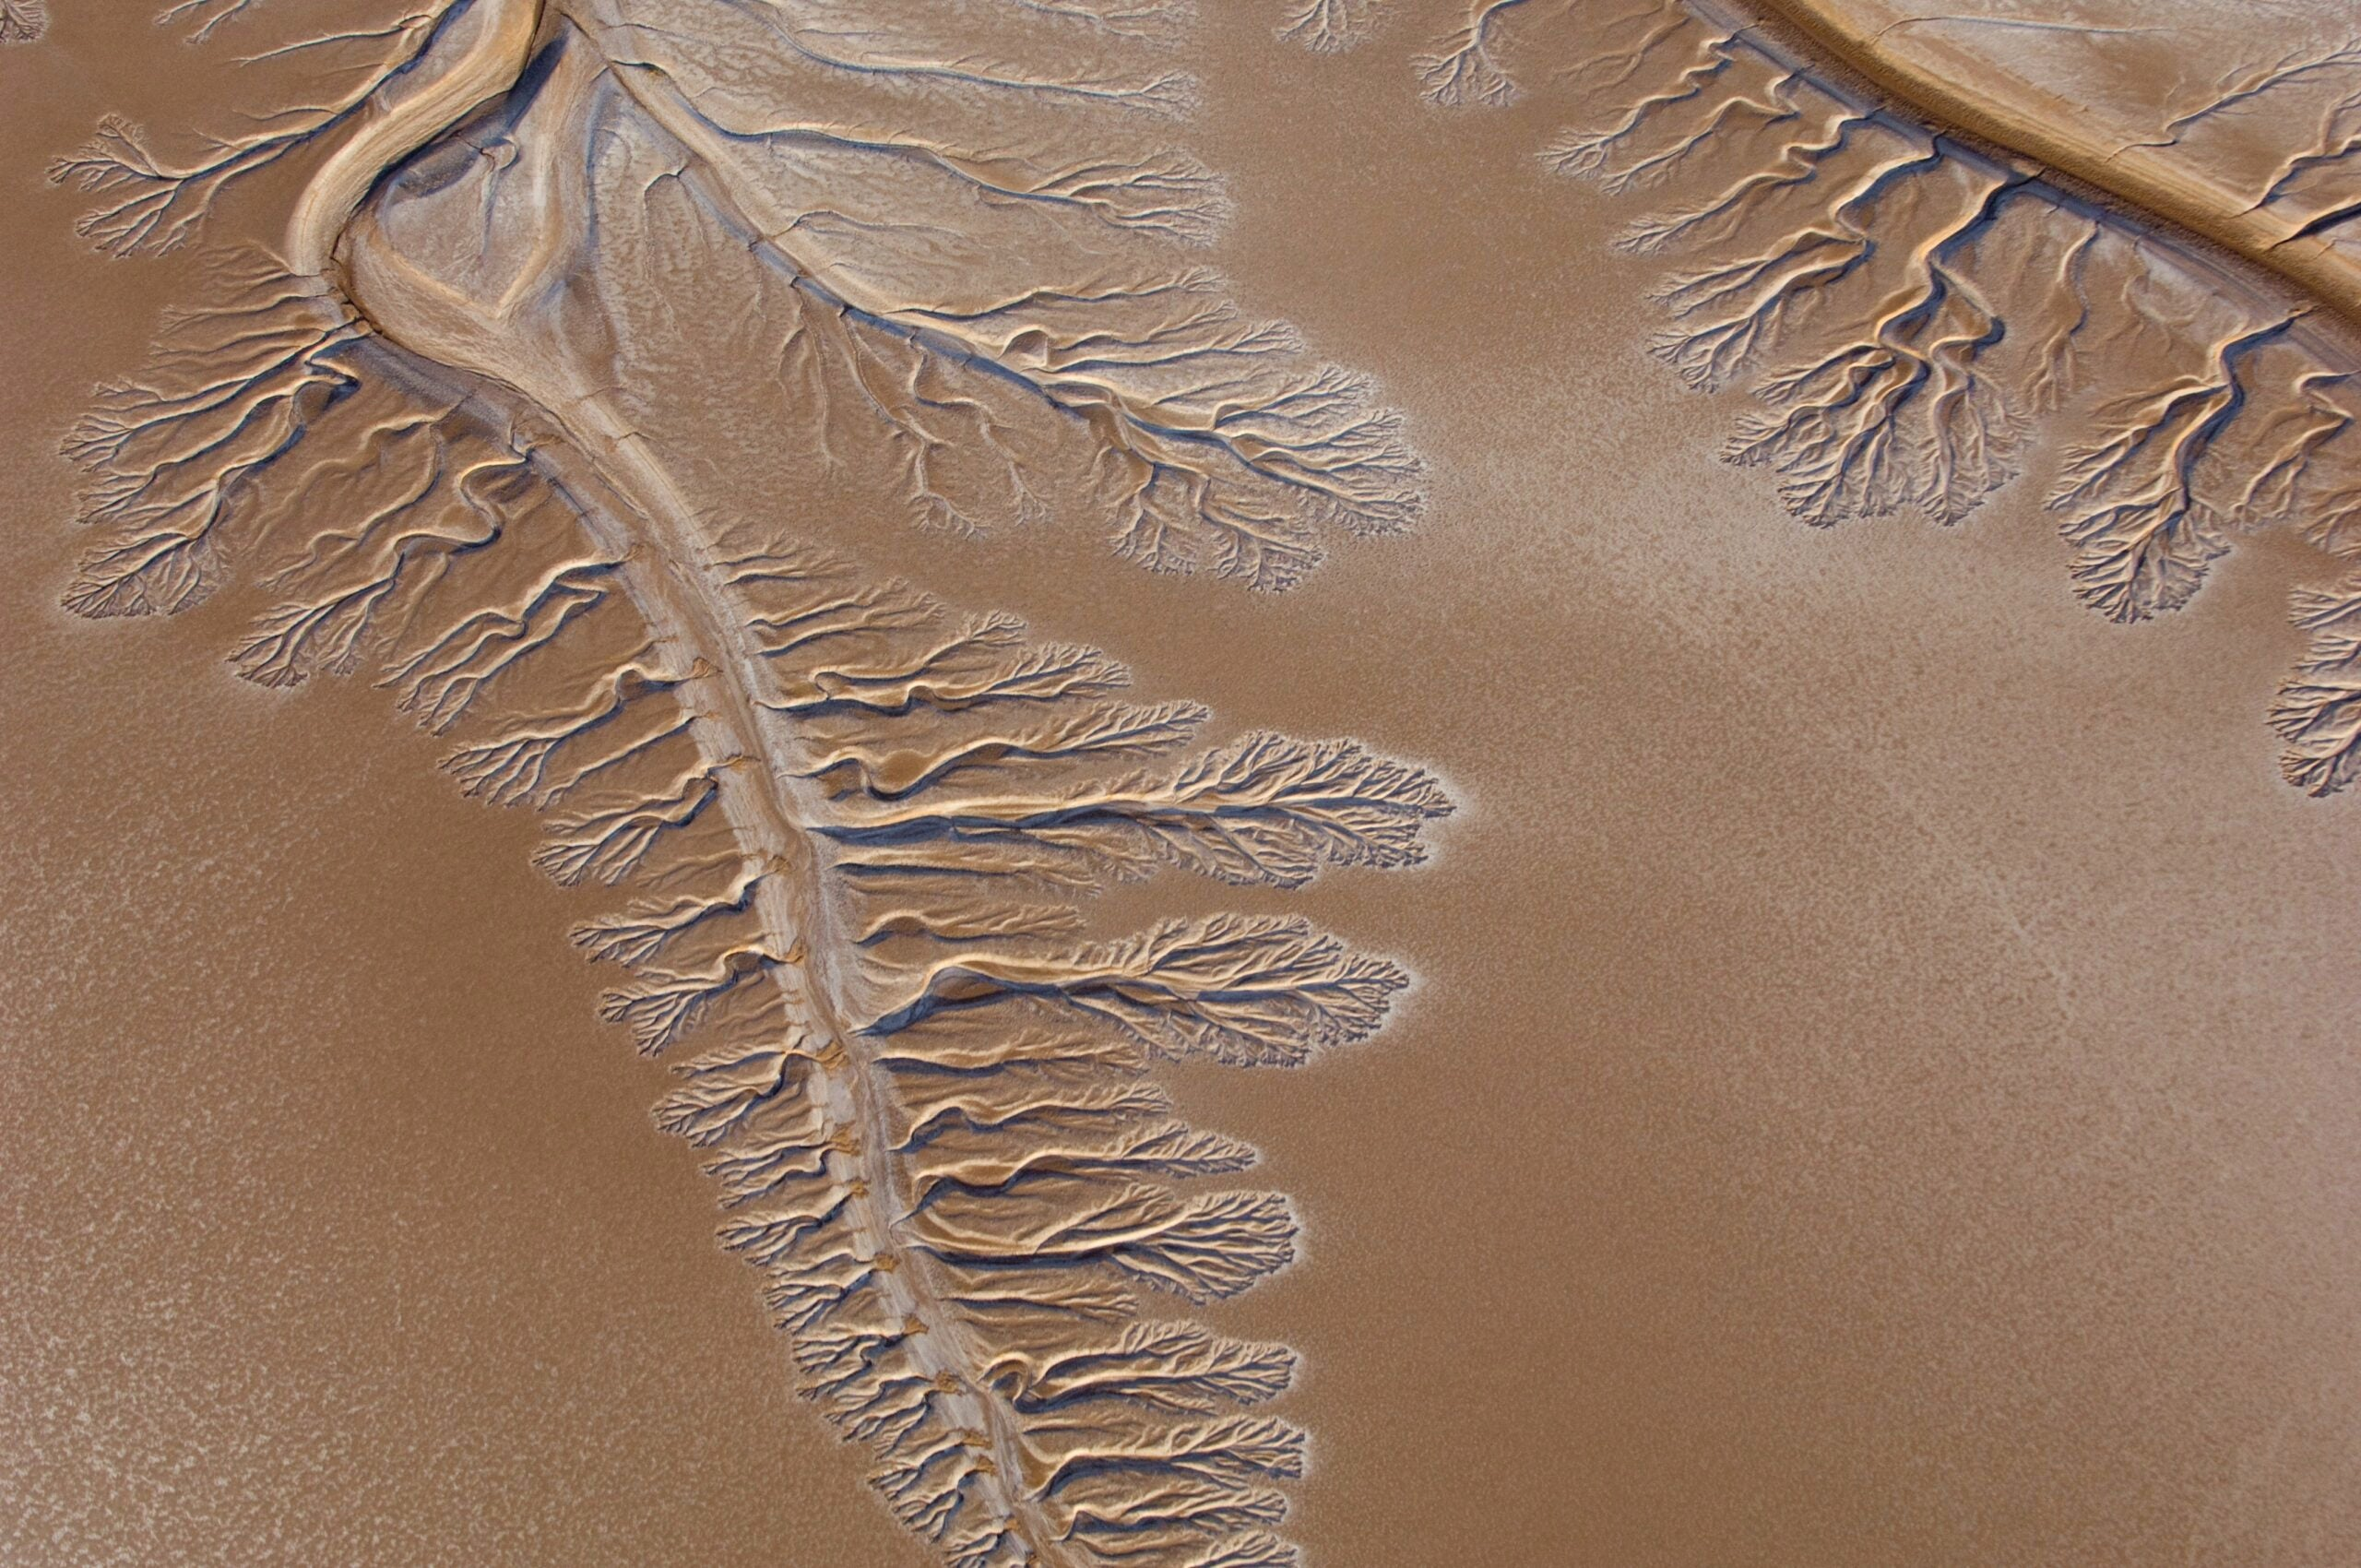 Colorado River Delta To Get Colorado River Water For First Time In Years